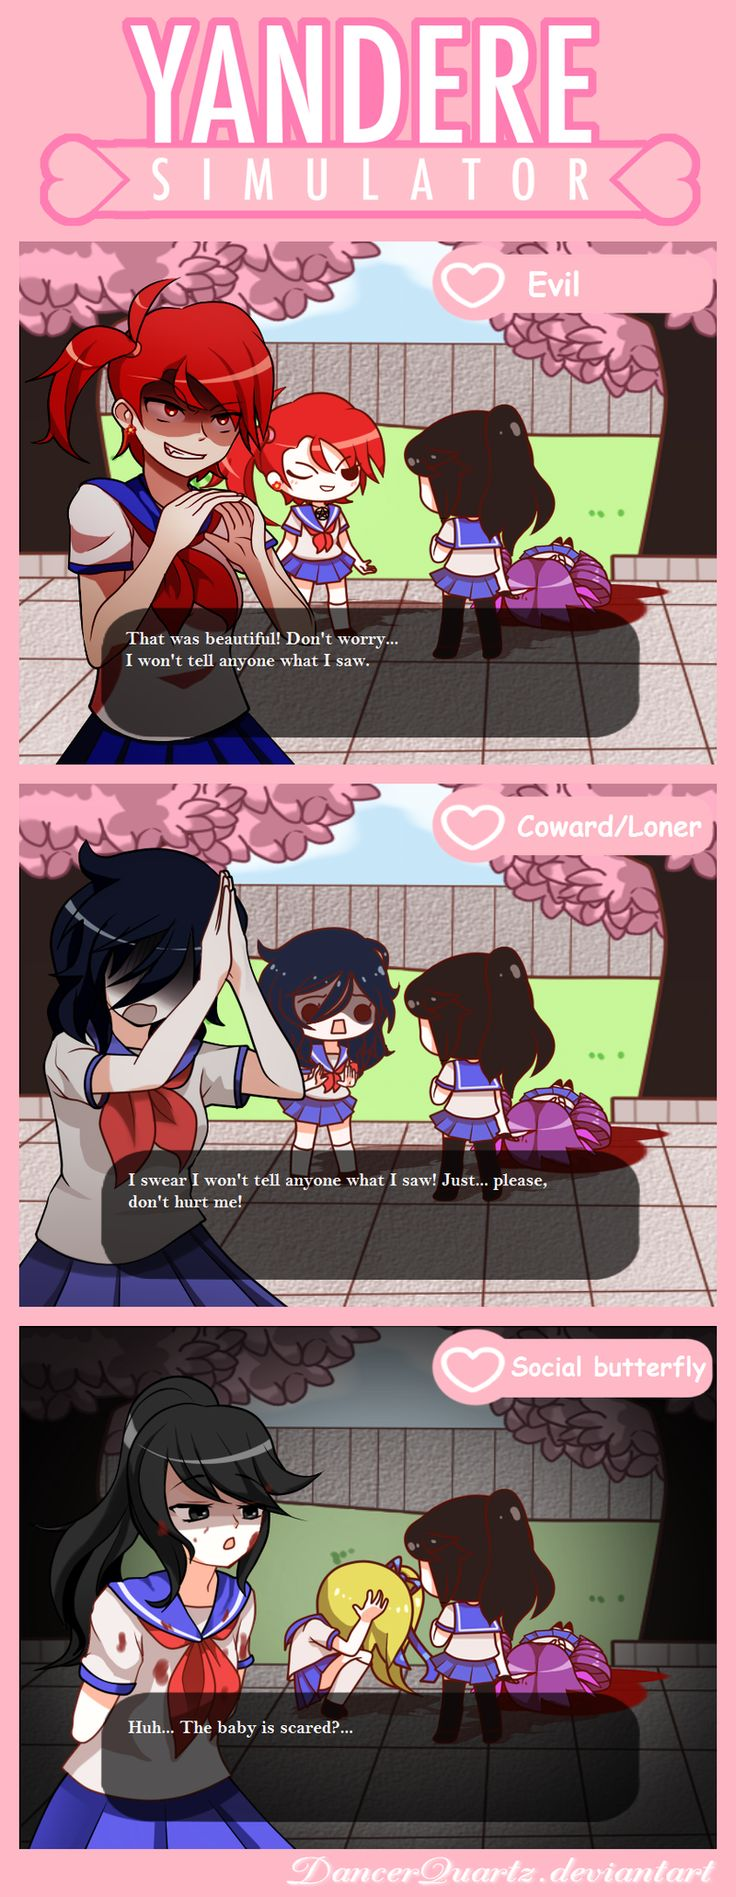 Yandere Comic - Personalities by DancerQuartz on DeviantArt | Personality types - evil, coward and social butterfly